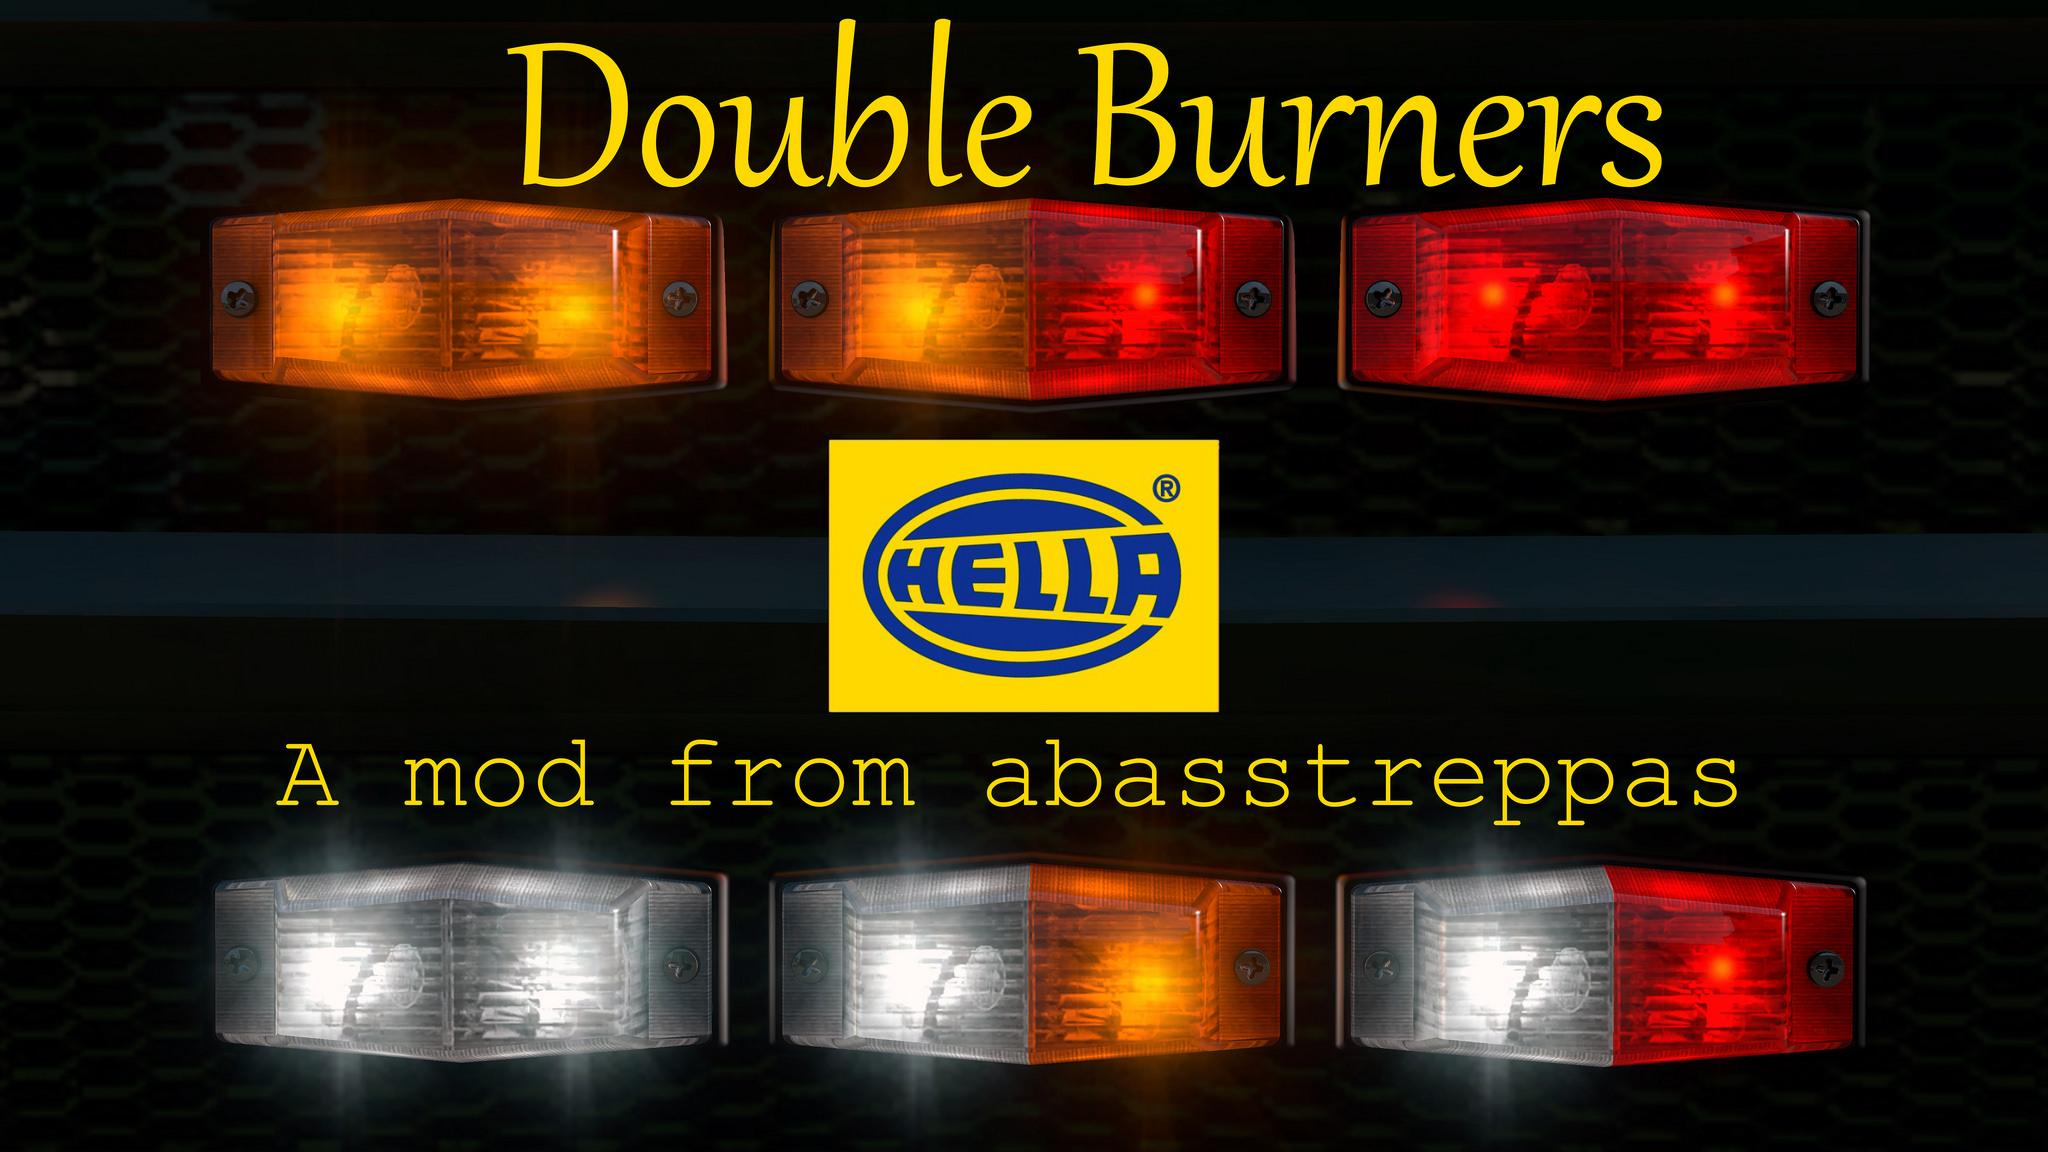 Hella Double Burners by abasstreppas